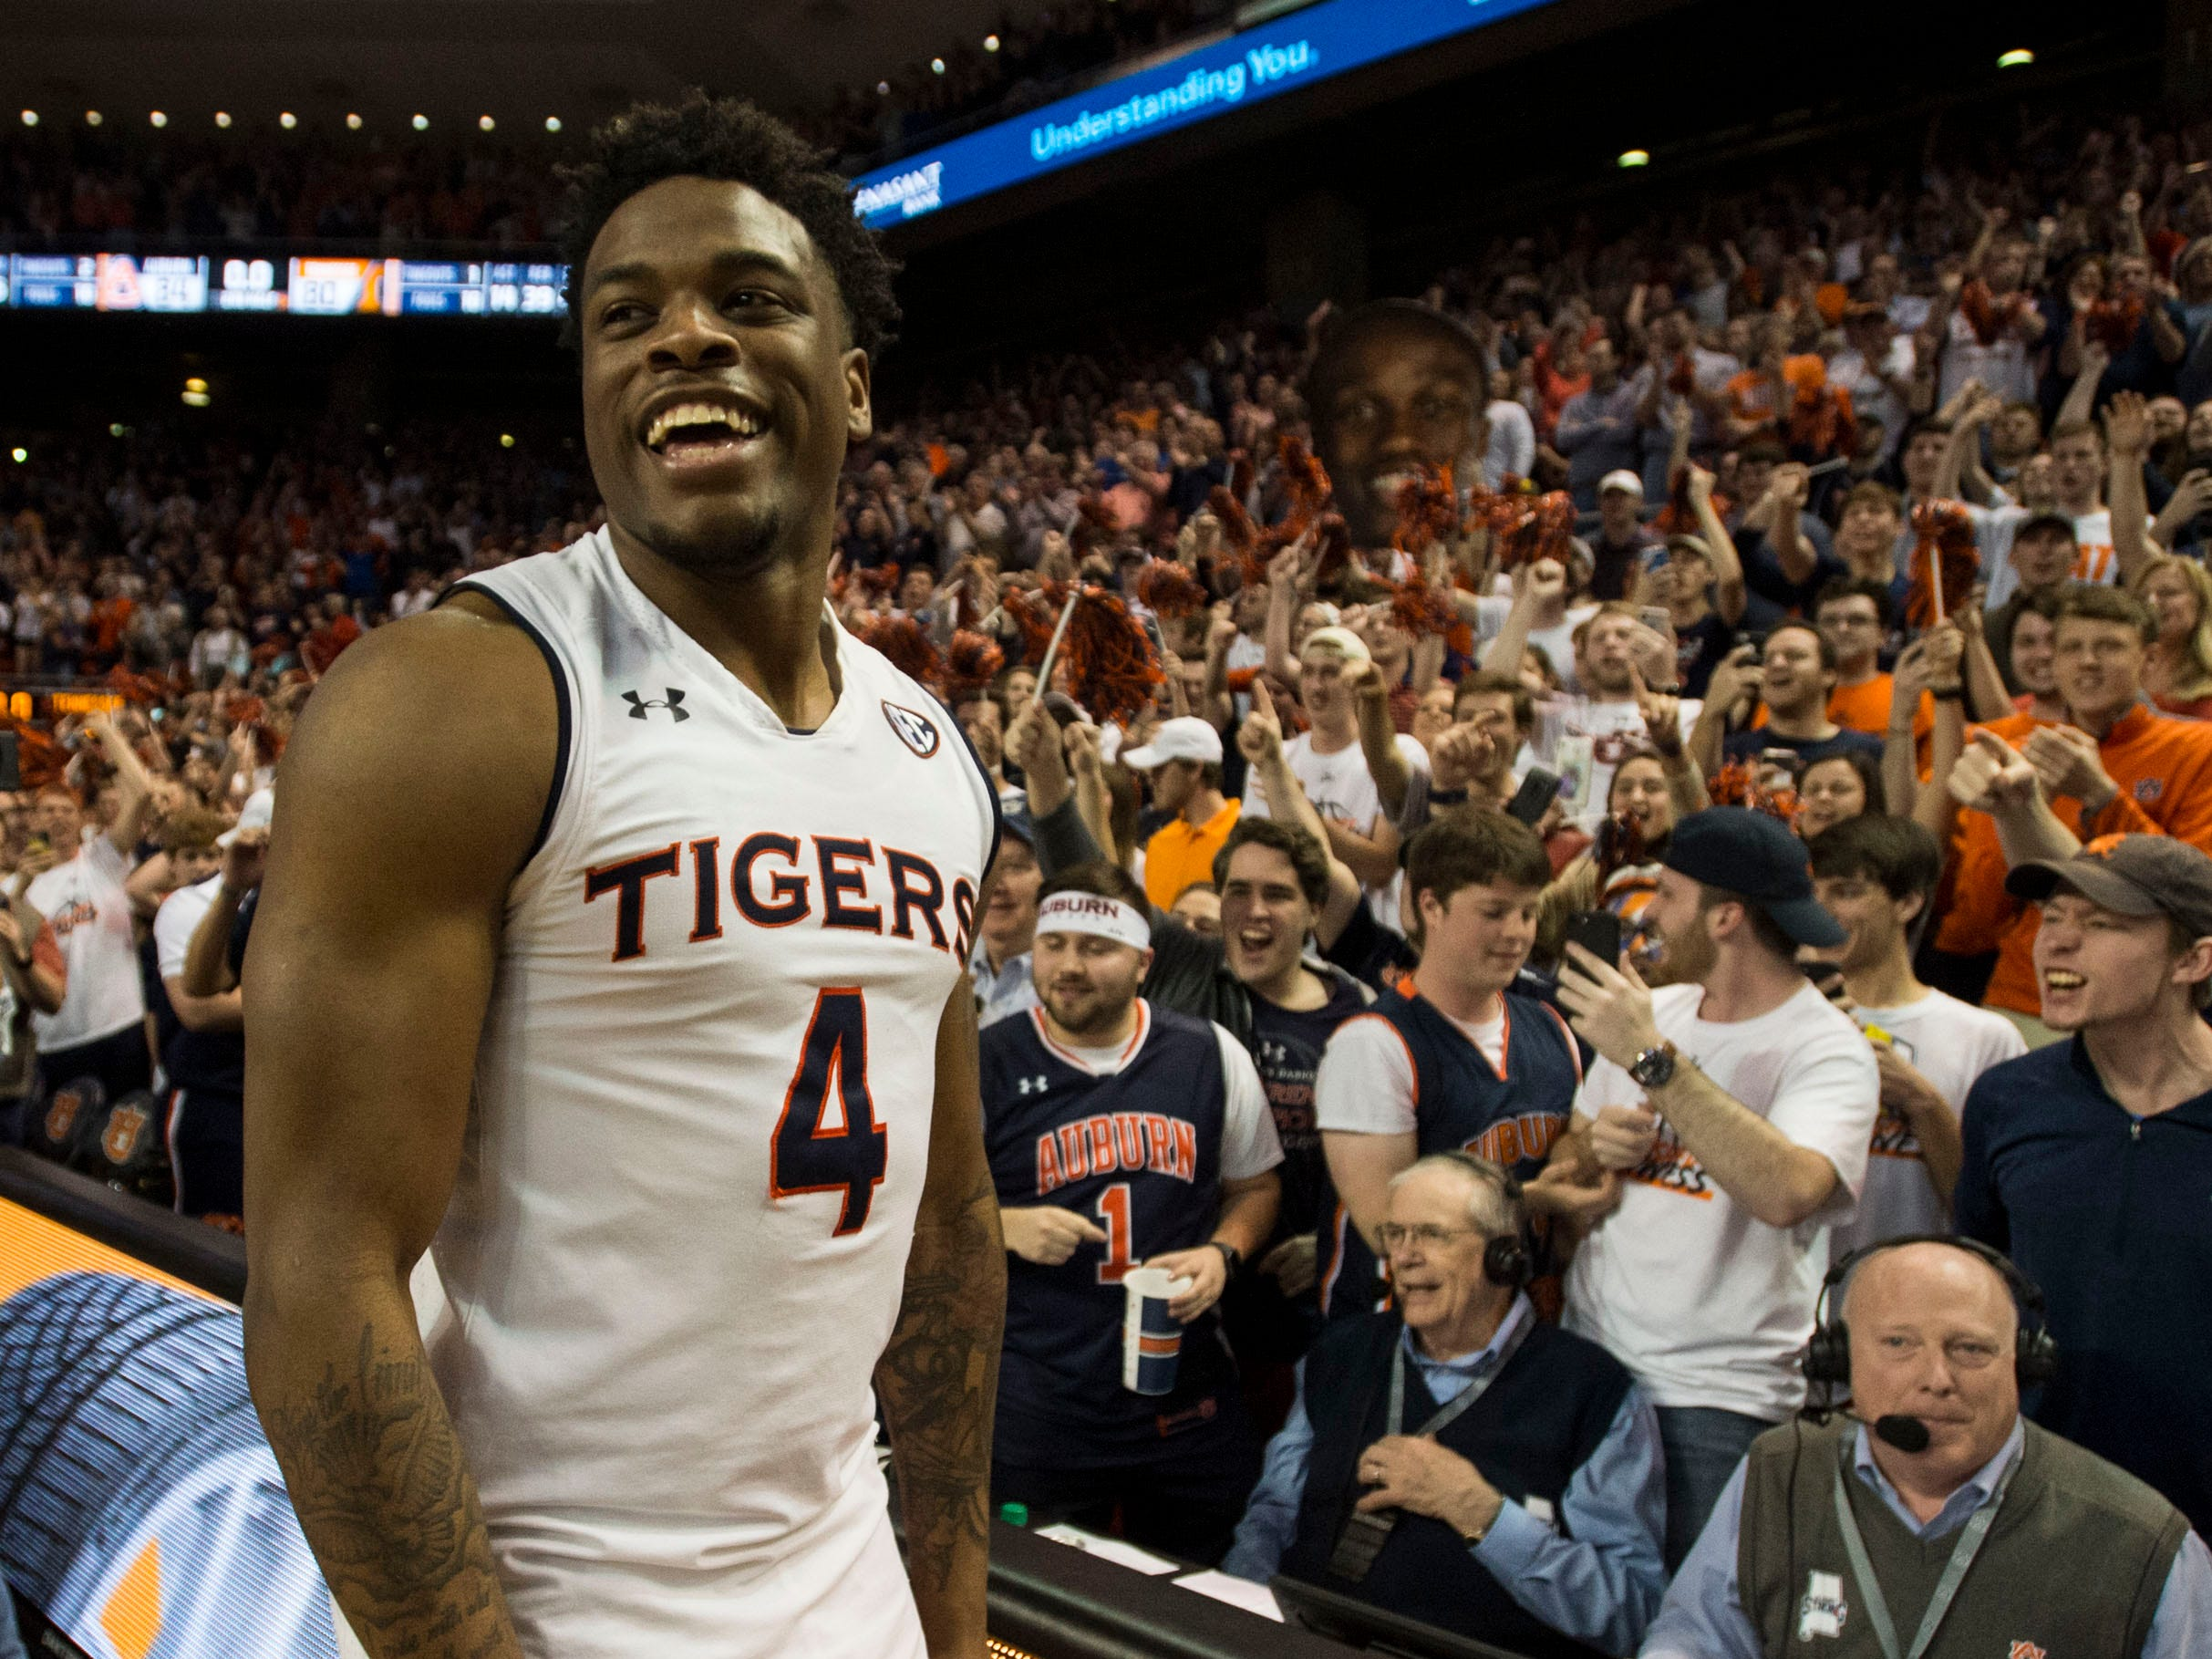 Auburn guard Malik Dunbar (4) celebrates with the crowd after the game at Auburn Arena in Auburn, Ala., on Saturday, March 9, 2019. Auburn defeated Tennessee 84-80.